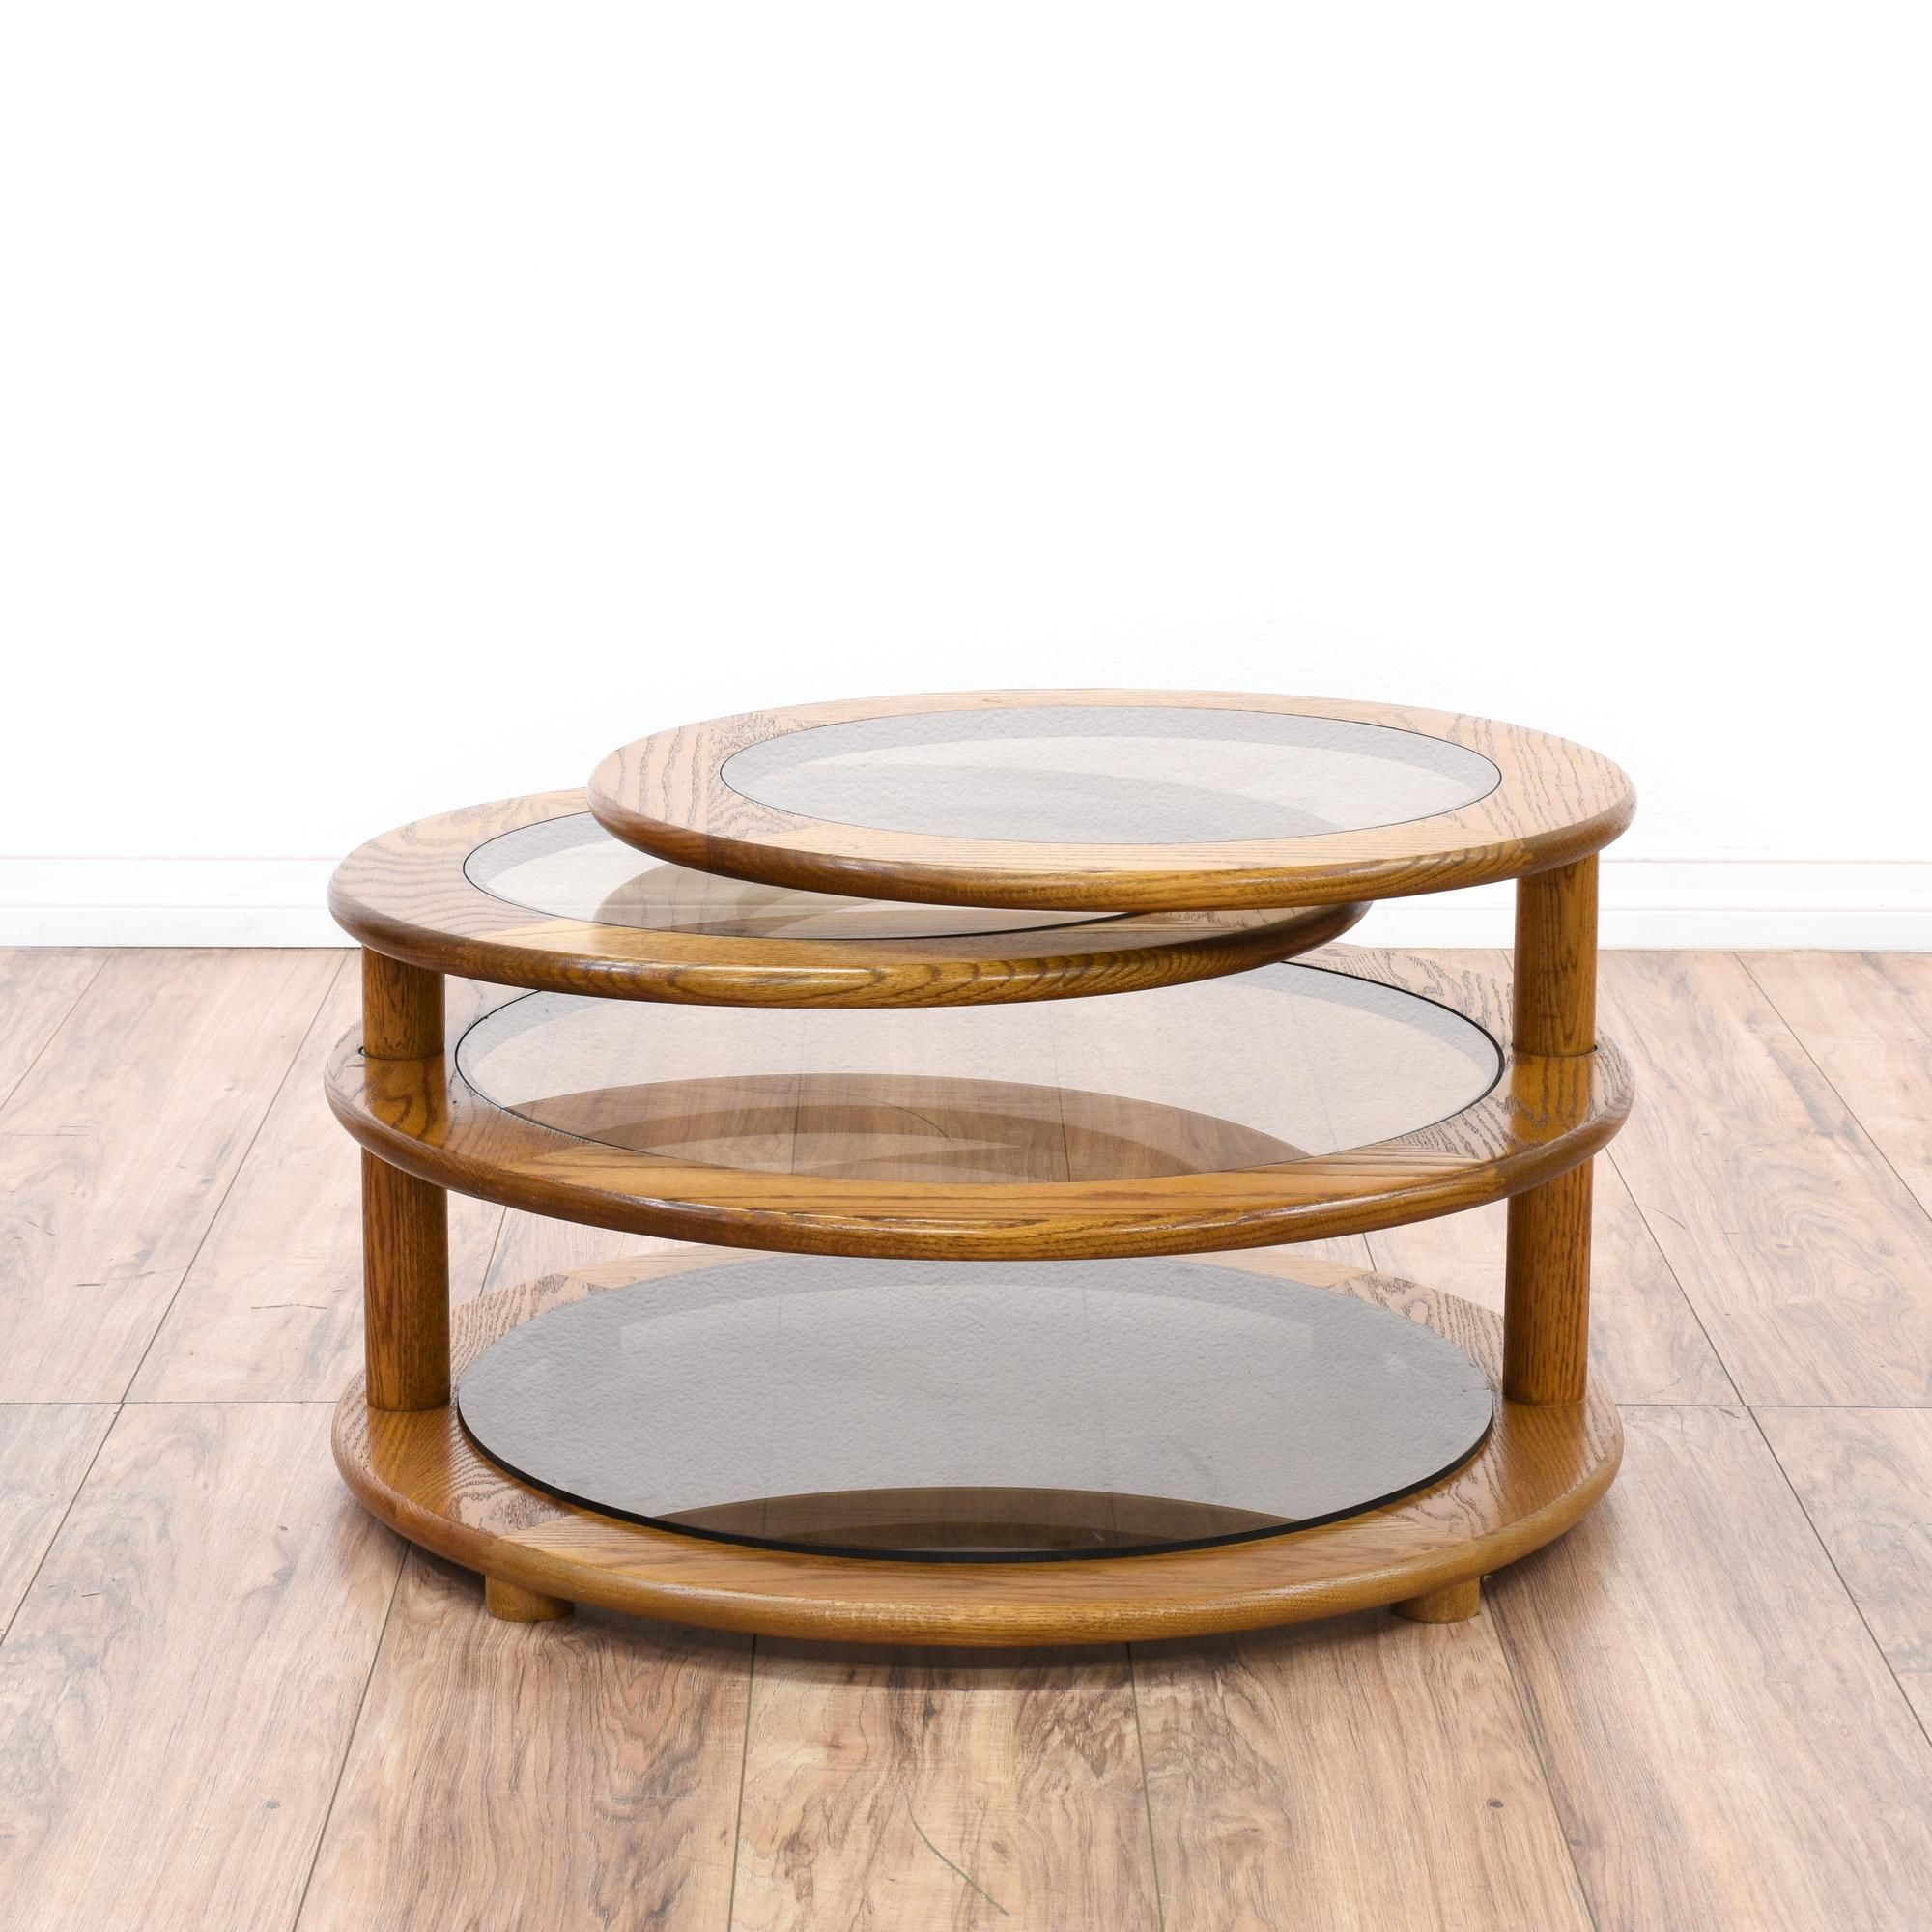 This Round Swivel Coffee Table Is Featured In A Solid Wood With Glossy Oak Finish